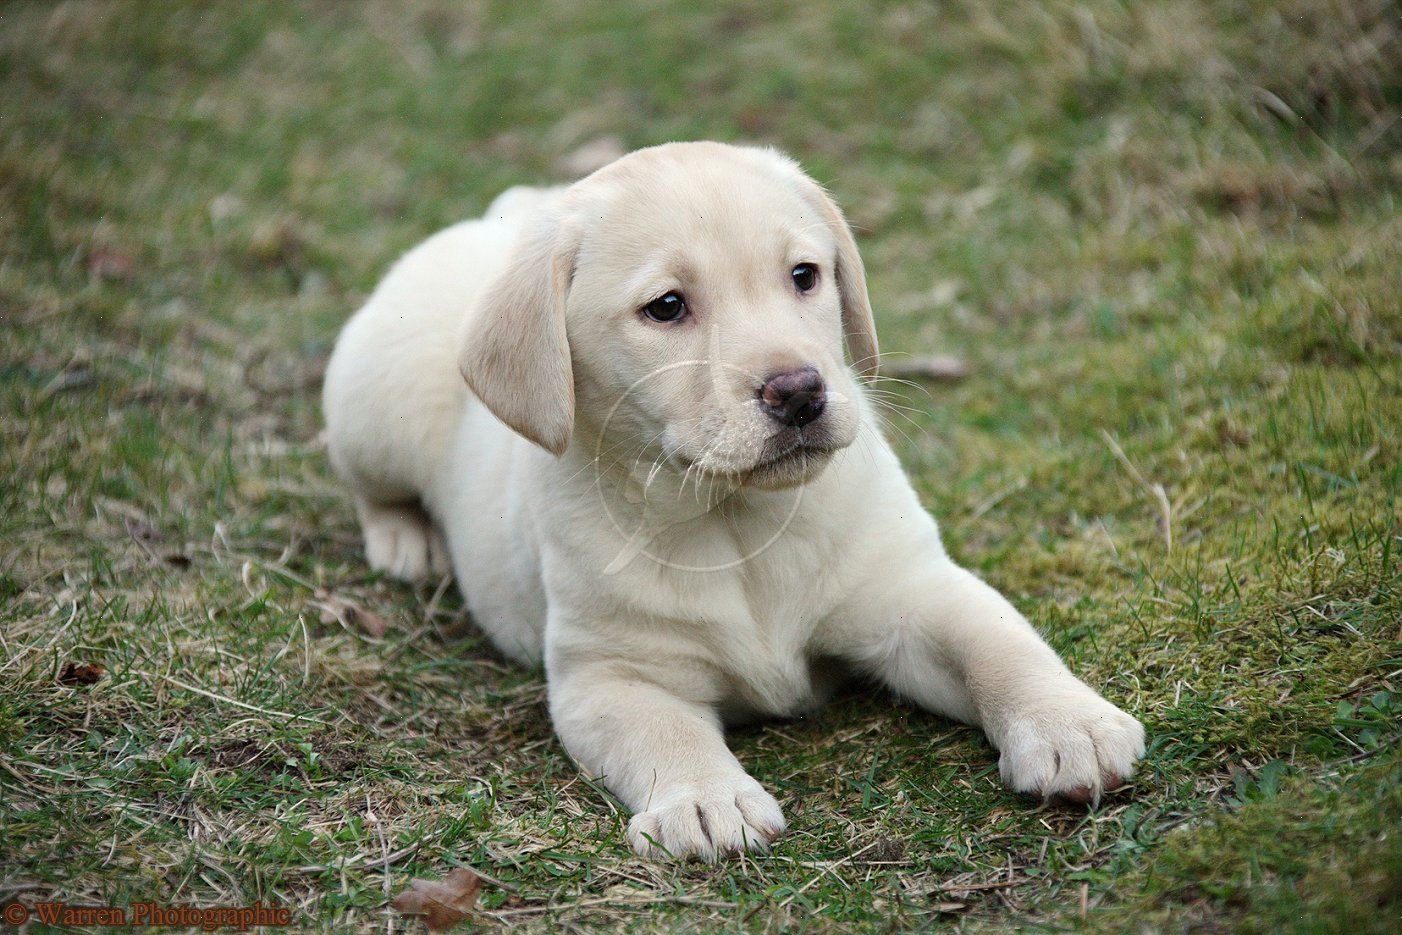 Labrador Retriever puppy photo and wallpaper Beautiful Labrador 1402x935